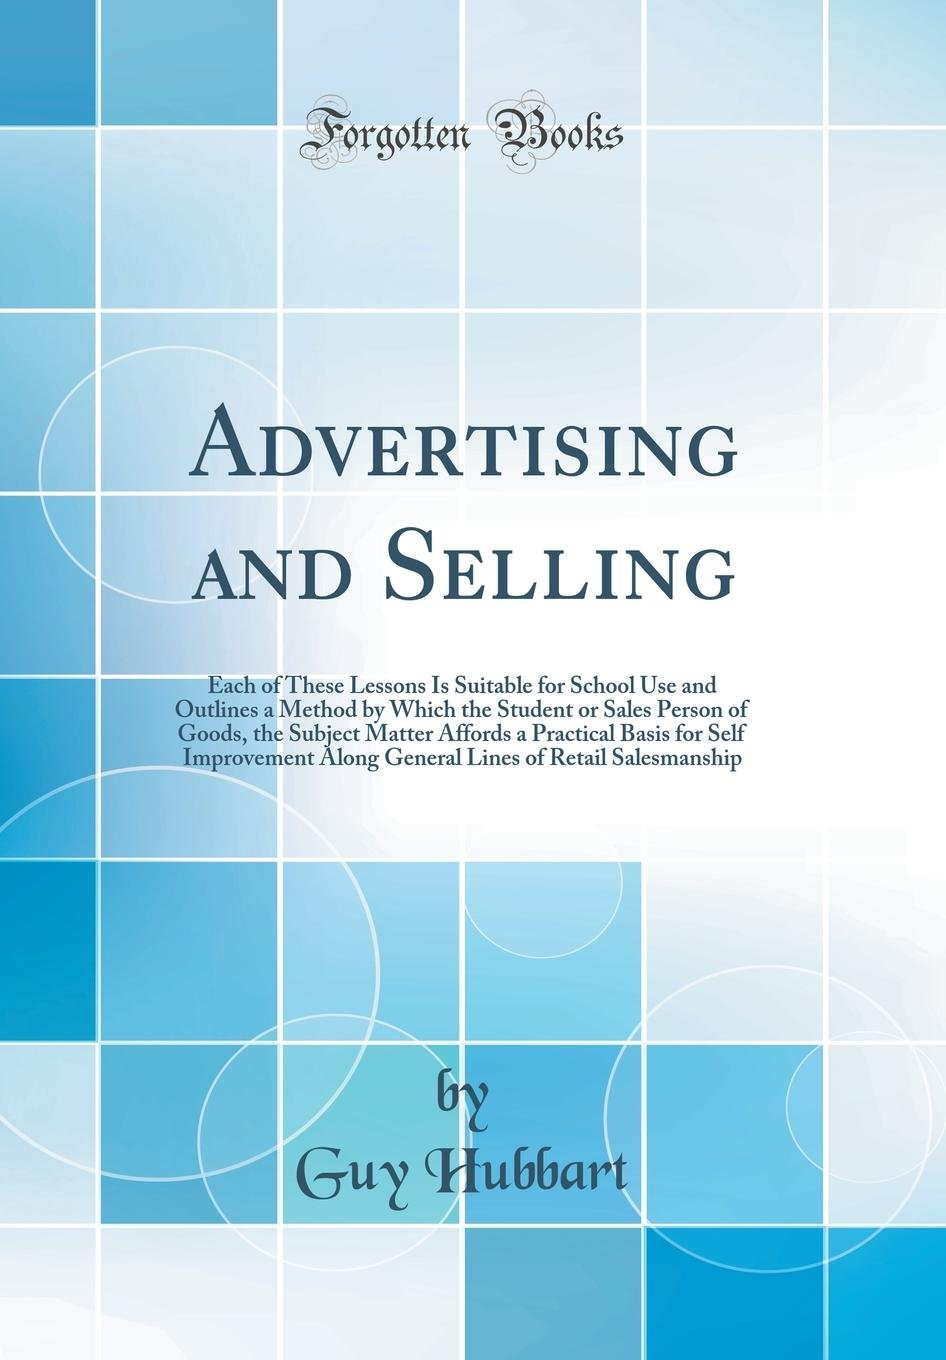 Download Advertising and Selling: Each of These Lessons Is Suitable for School Use and Outlines a Method by Which the Student or Sales Person of Goods, the ... Along General Lines of Retail Salesmanship pdf